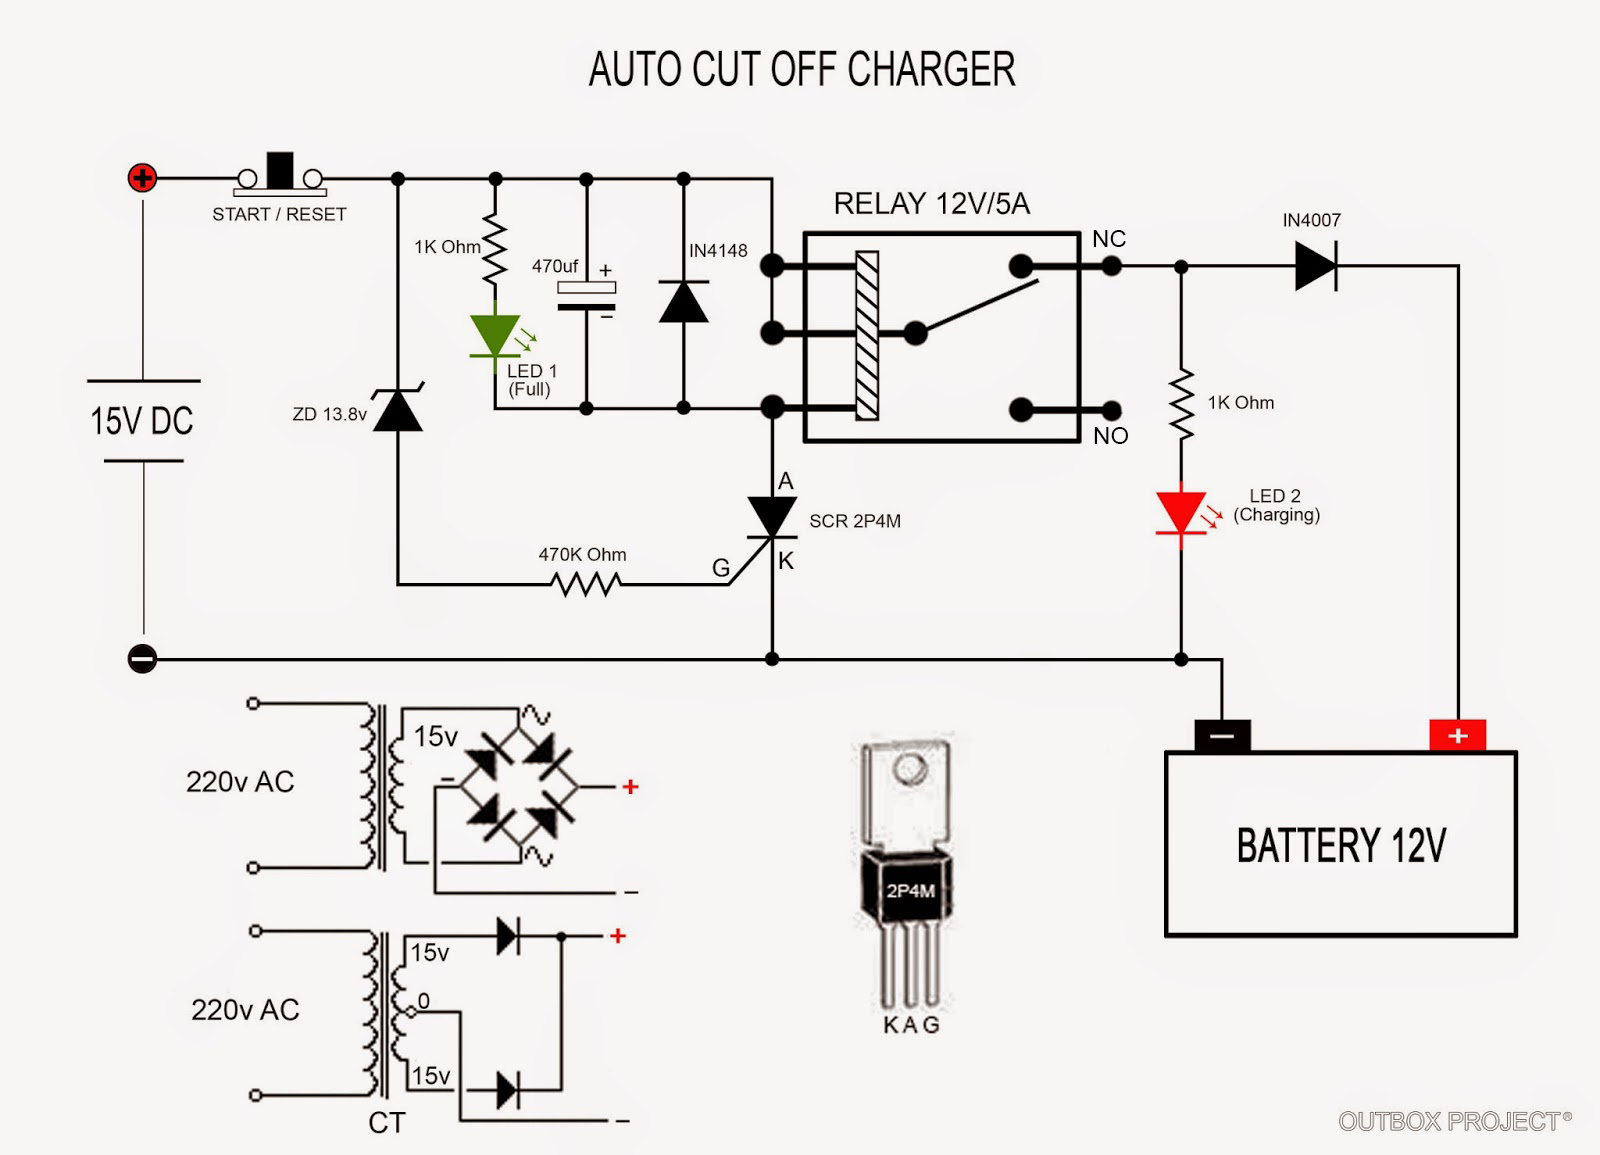 Outbox Project Membuat Charger Aki Otomatis Auto Cut Off Charger